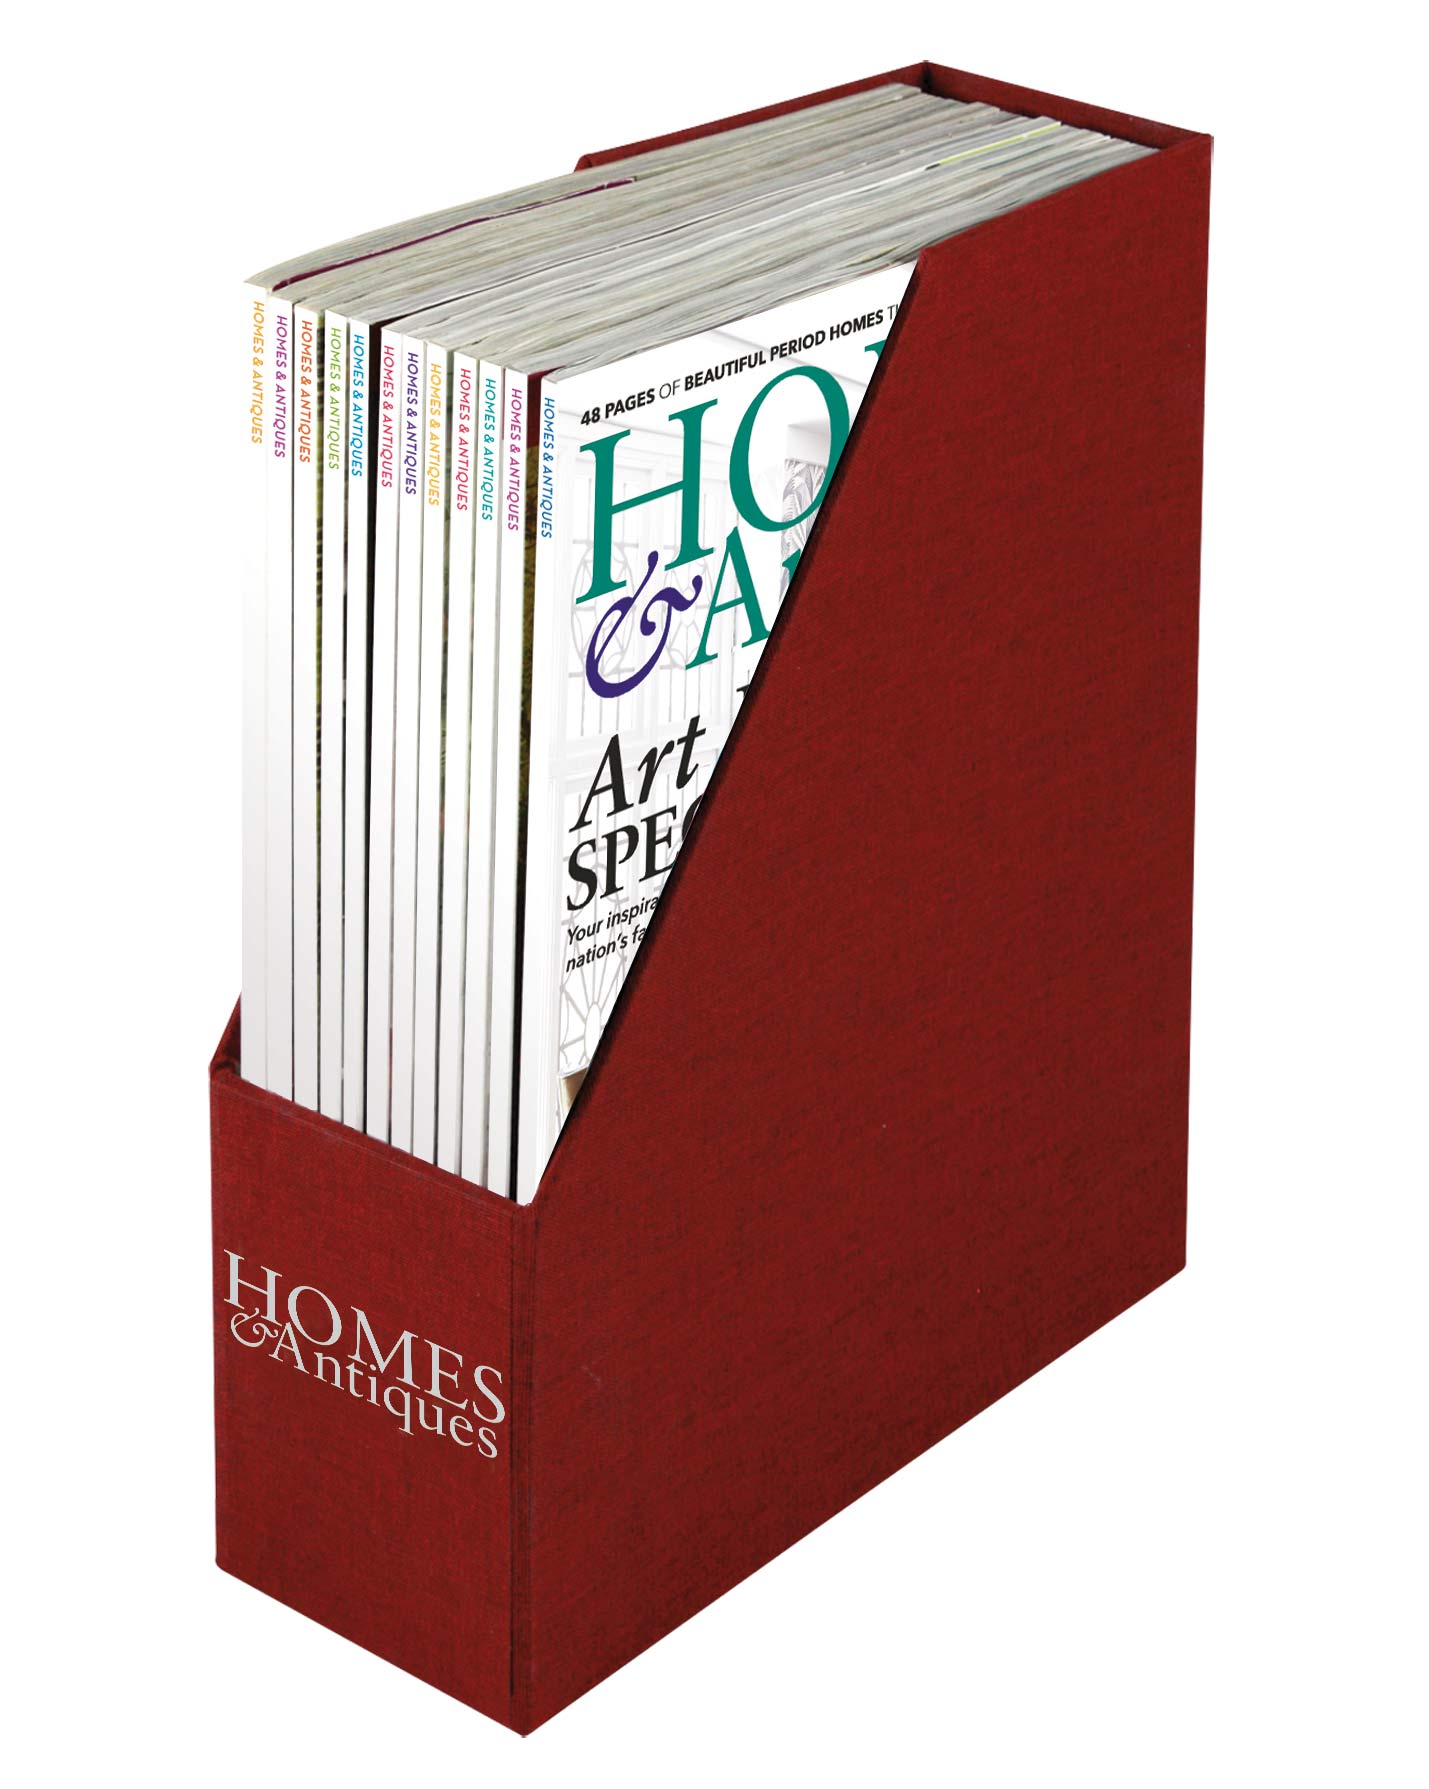 Homes & Antiques Magazine Binder